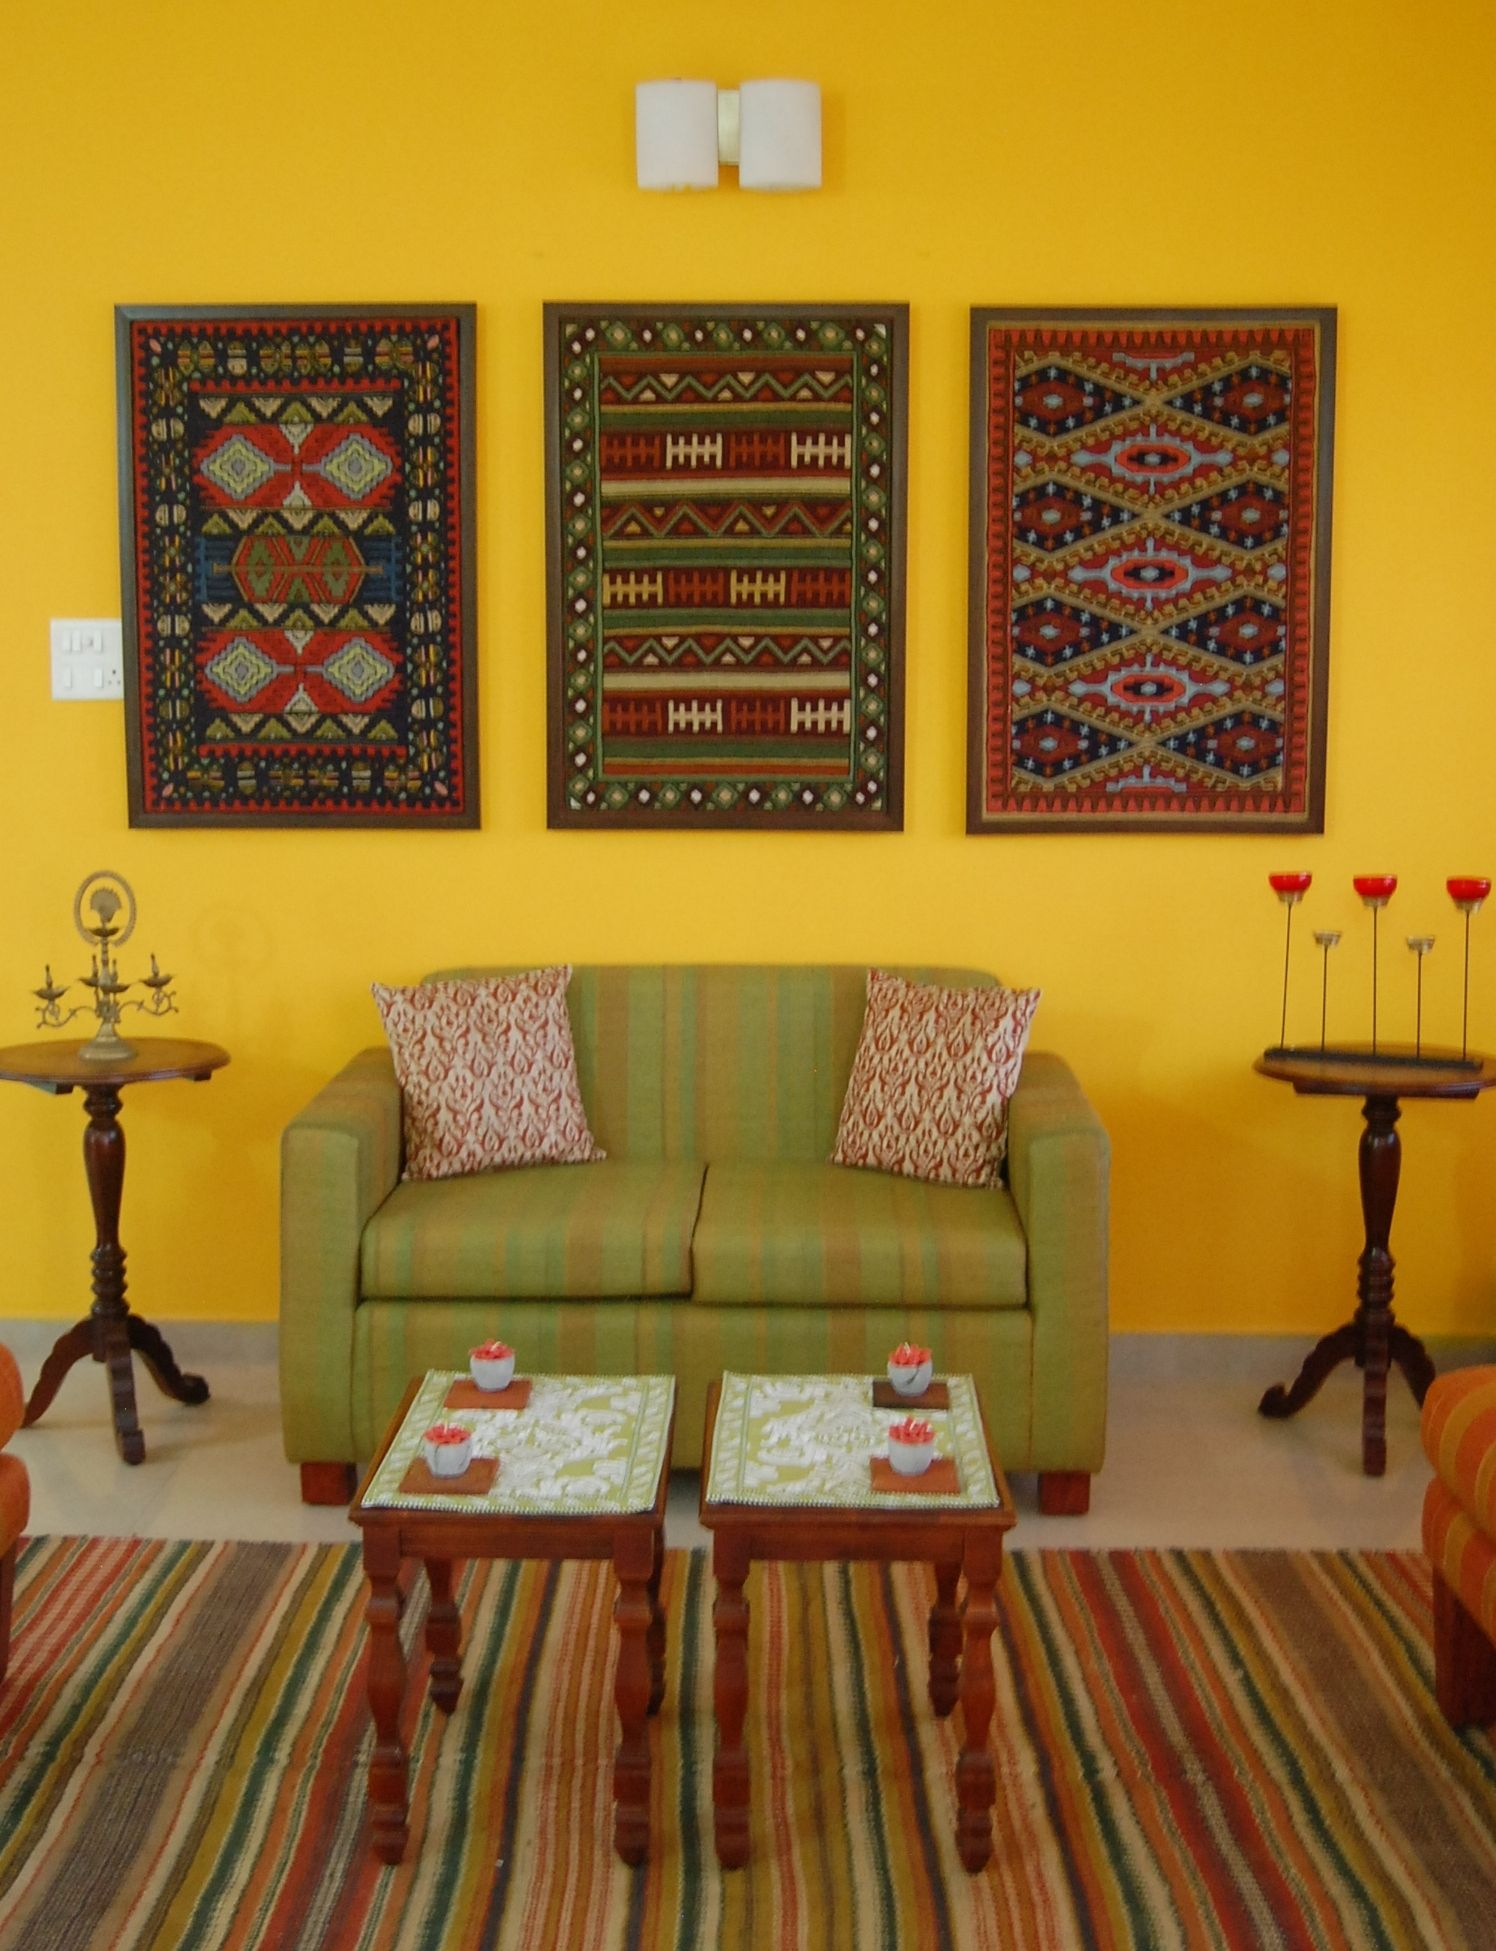 framed kilim artwork on mustard yellow wall #indianhomedecor | Home ...